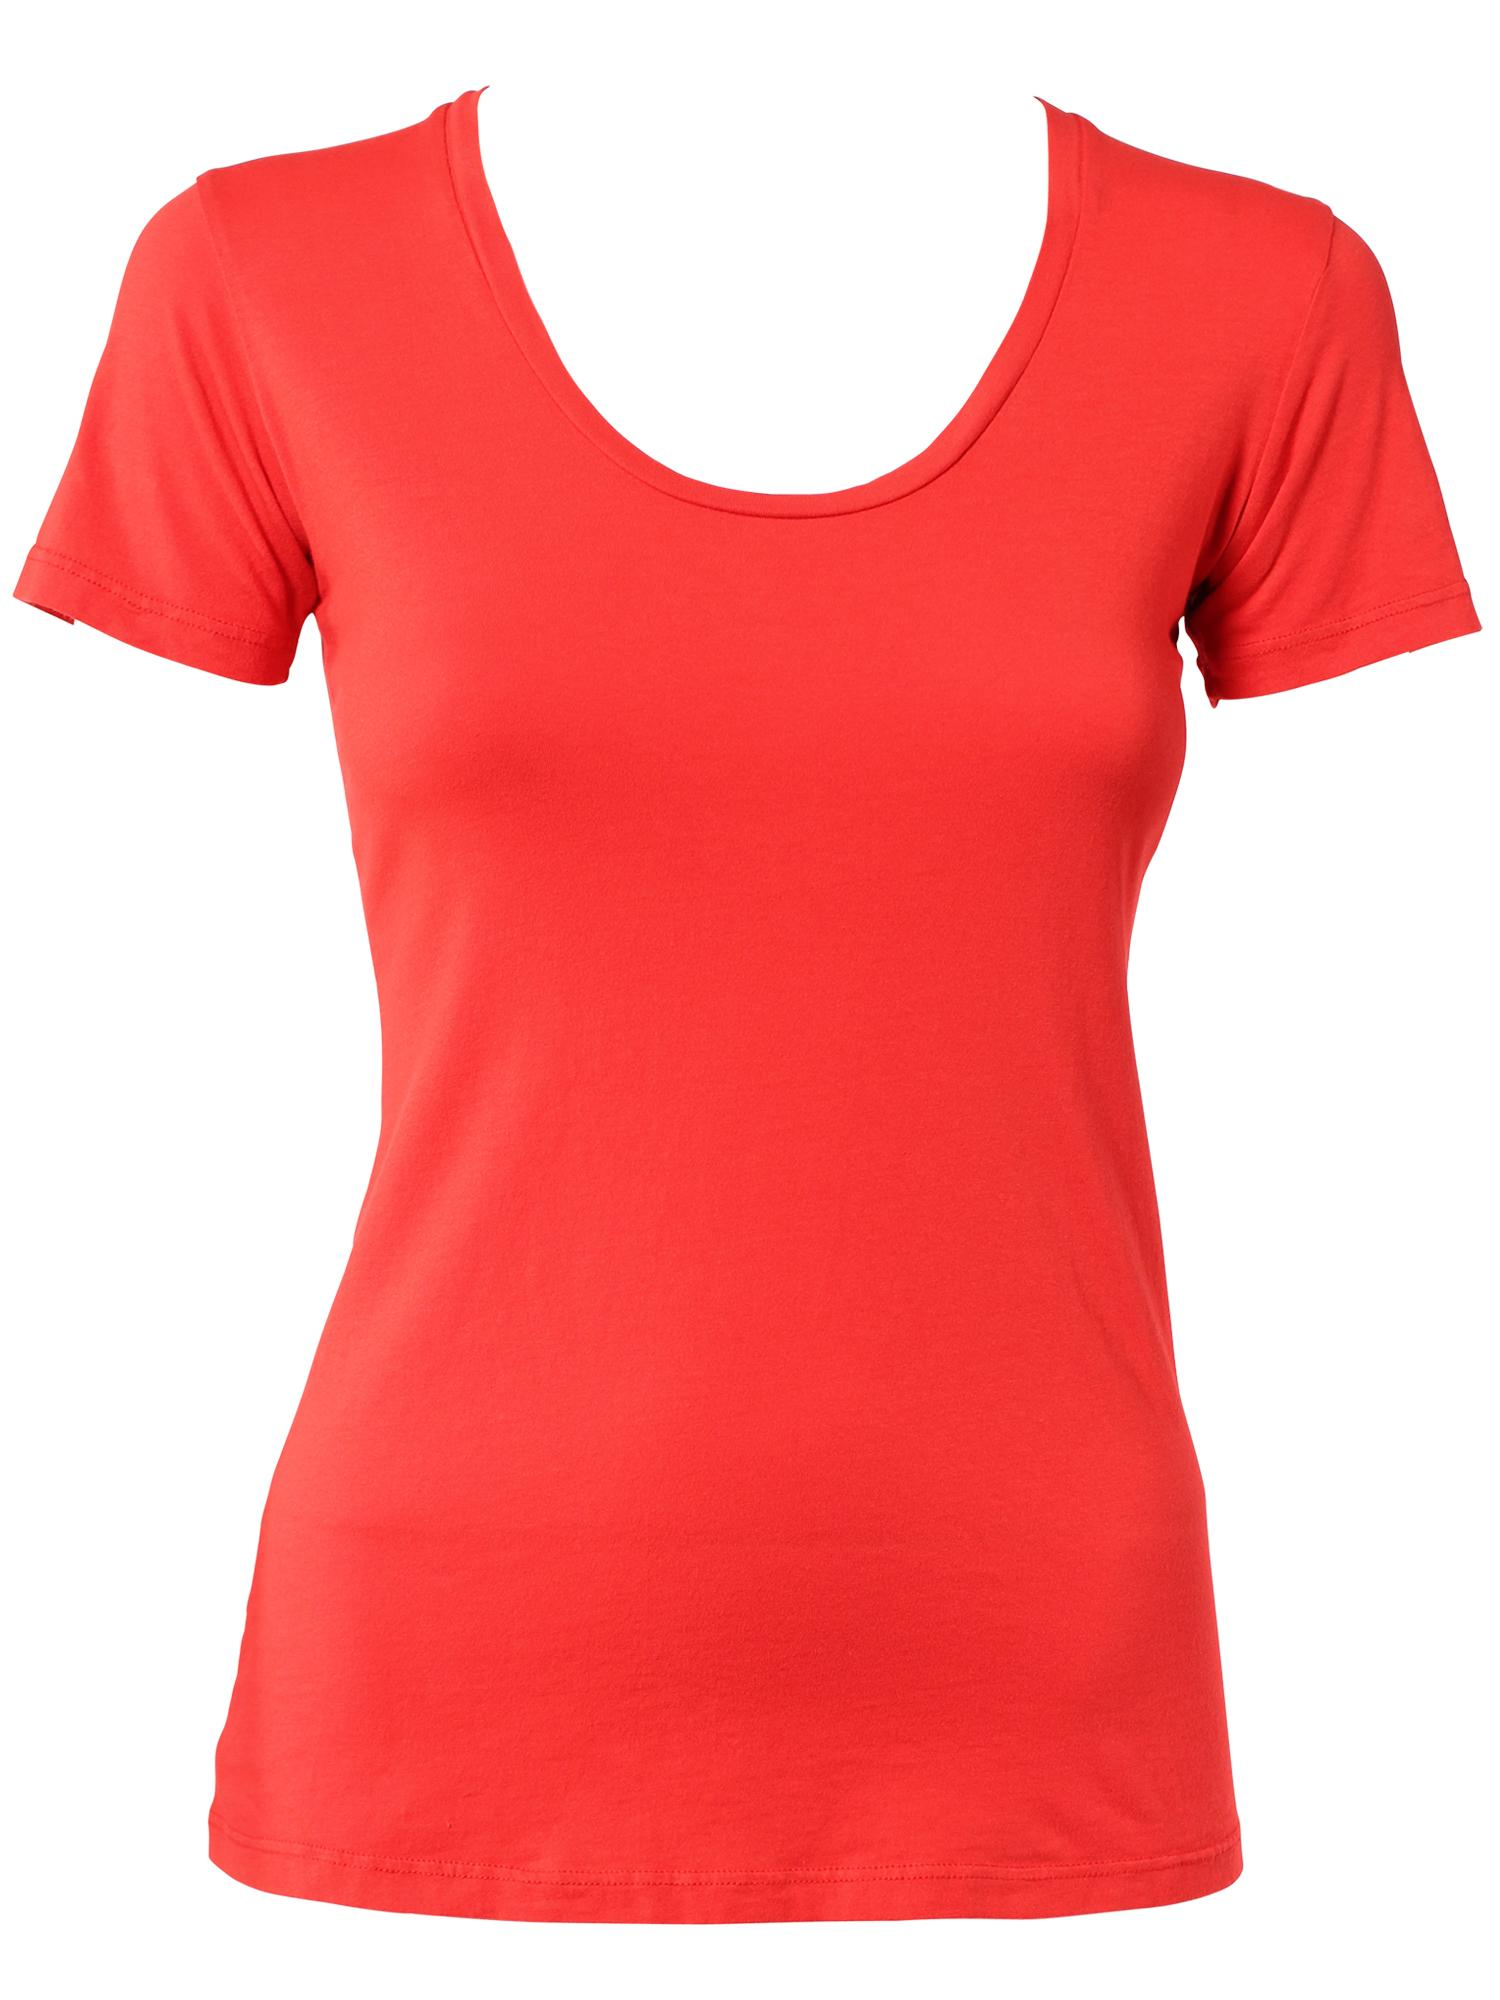 Modern Red Scoop Neck Tee | Fashioning Change ®